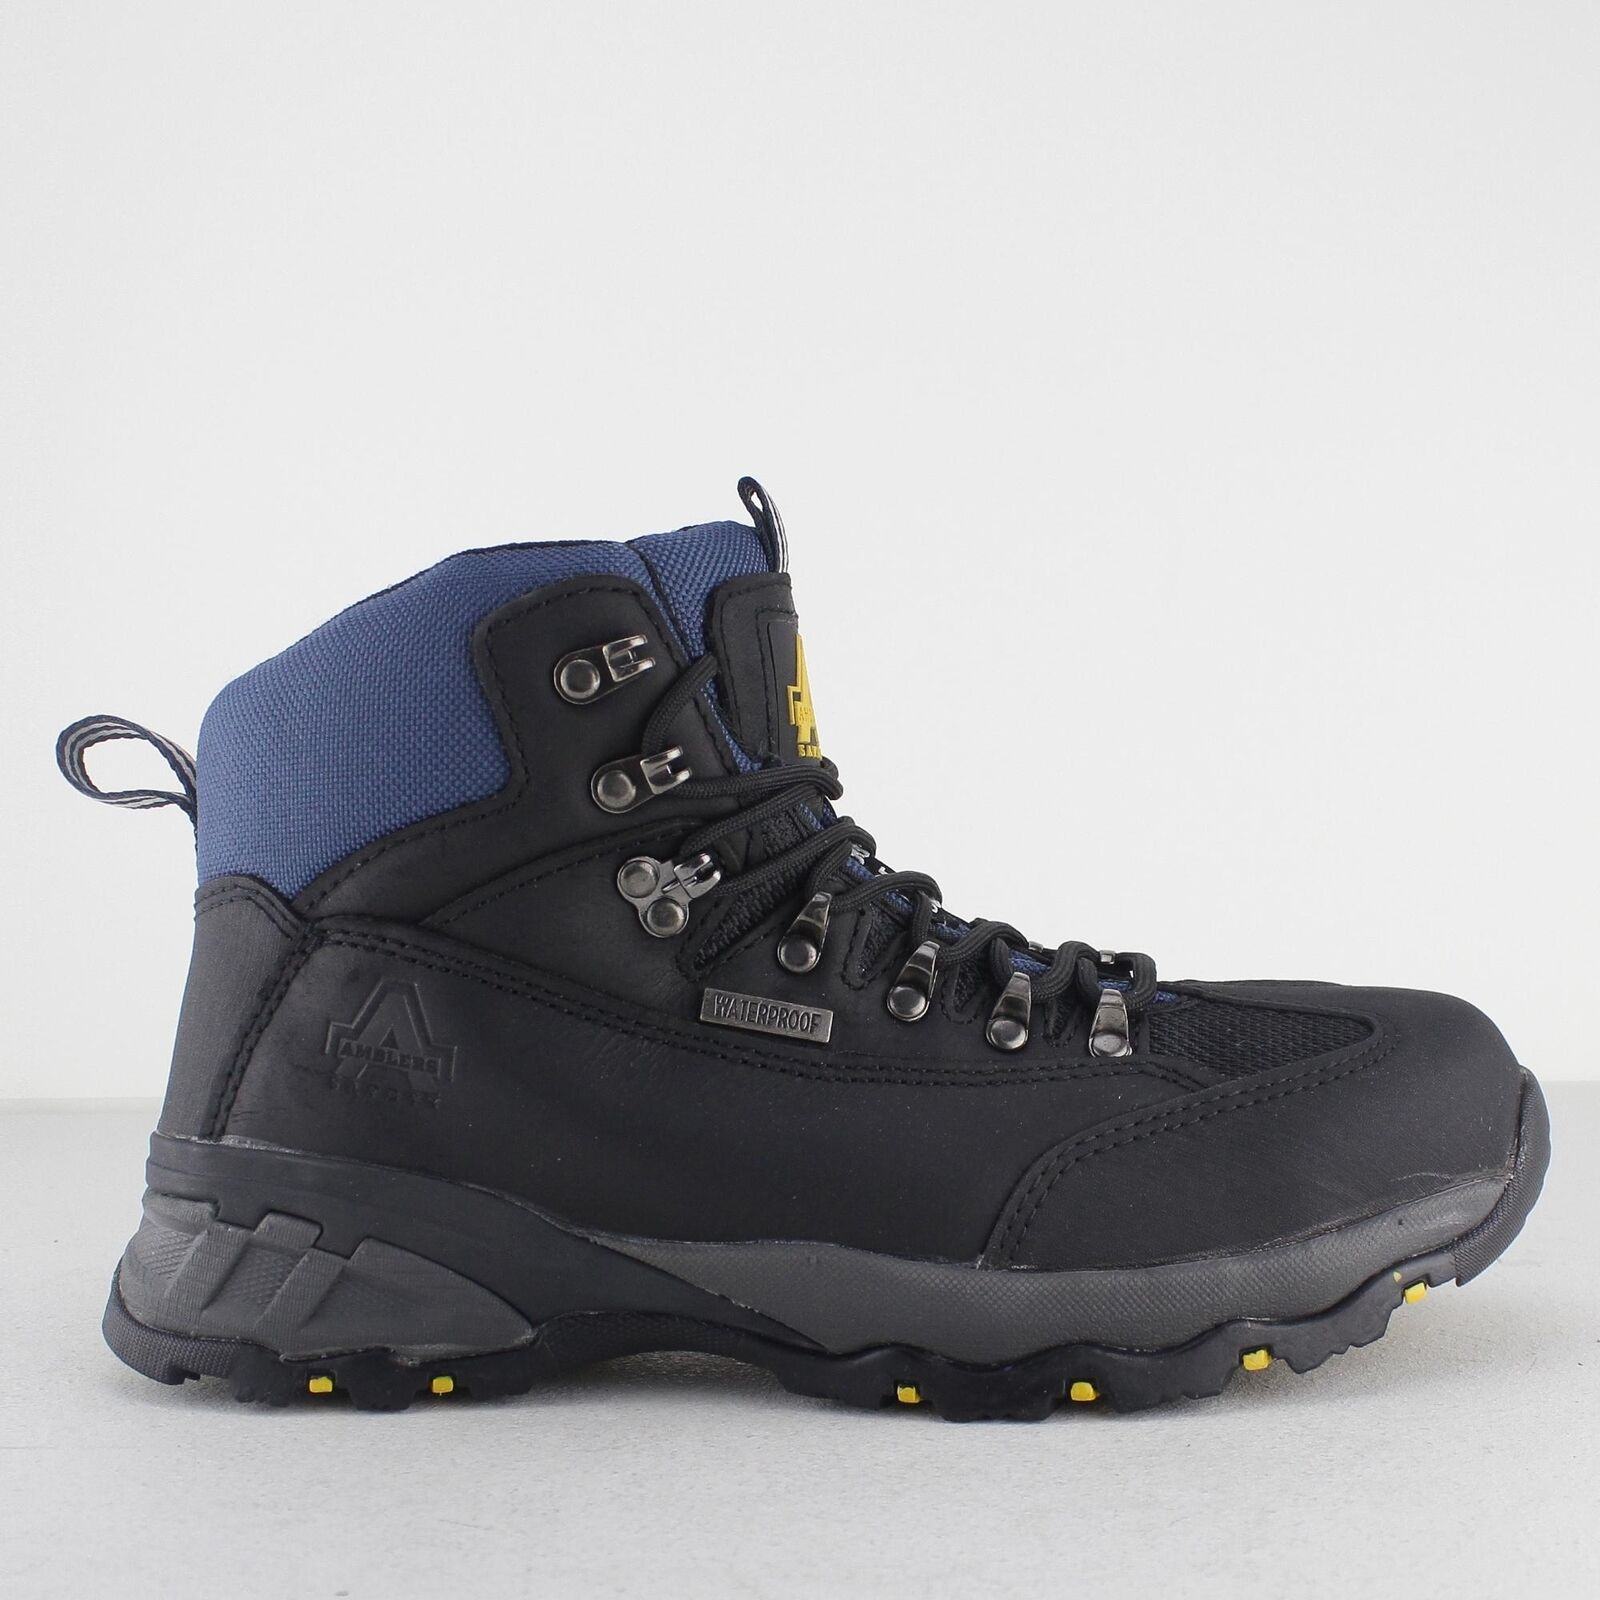 Amblers Safety FS161 Unisex Mens Ladies Womens SB Waterproof Safety Boots Black